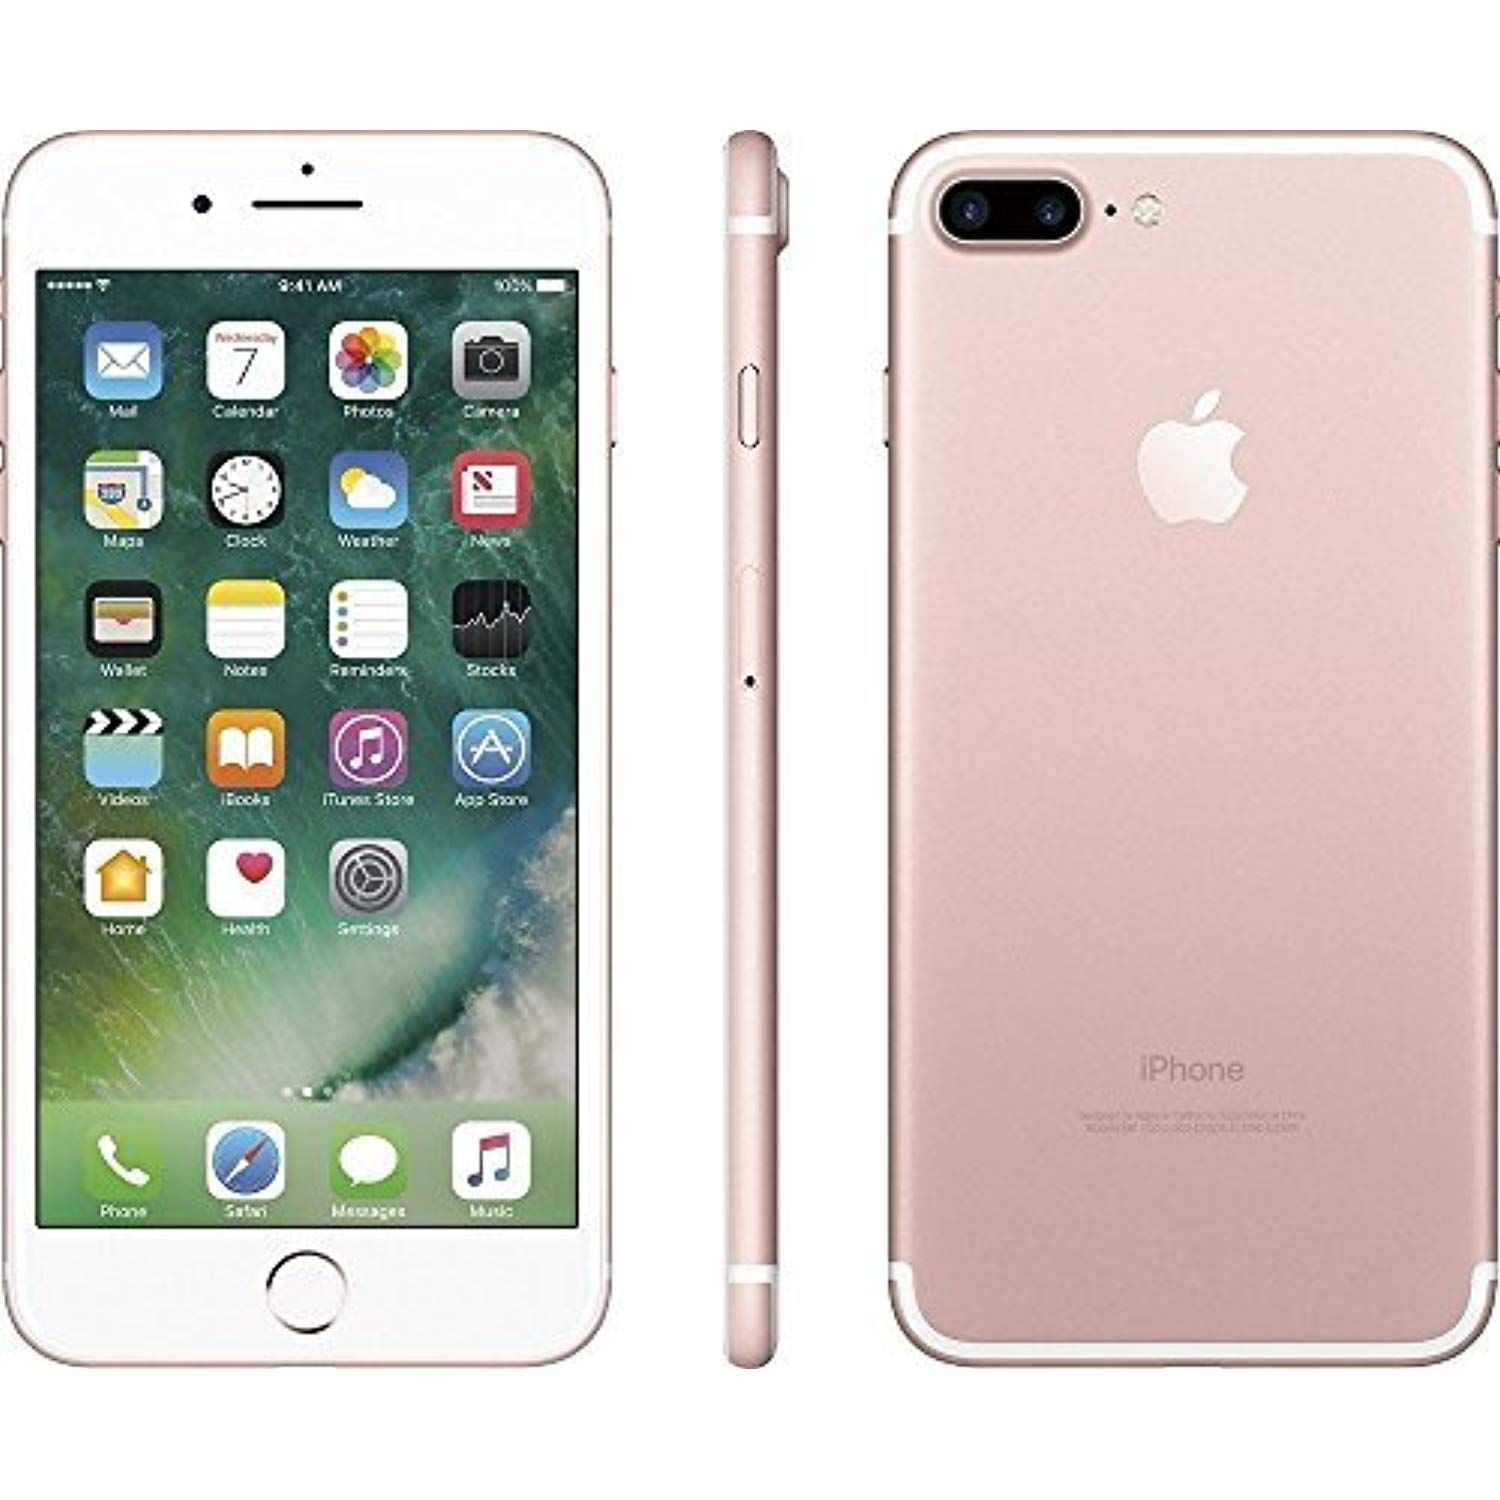 Apple Iphone 7 Plus 128 Gb Unlocked Rose Gold Certified Refurbished Want Additional Info Click On The Image This Is An Aff Iphone Iphone 7 Apple Iphone